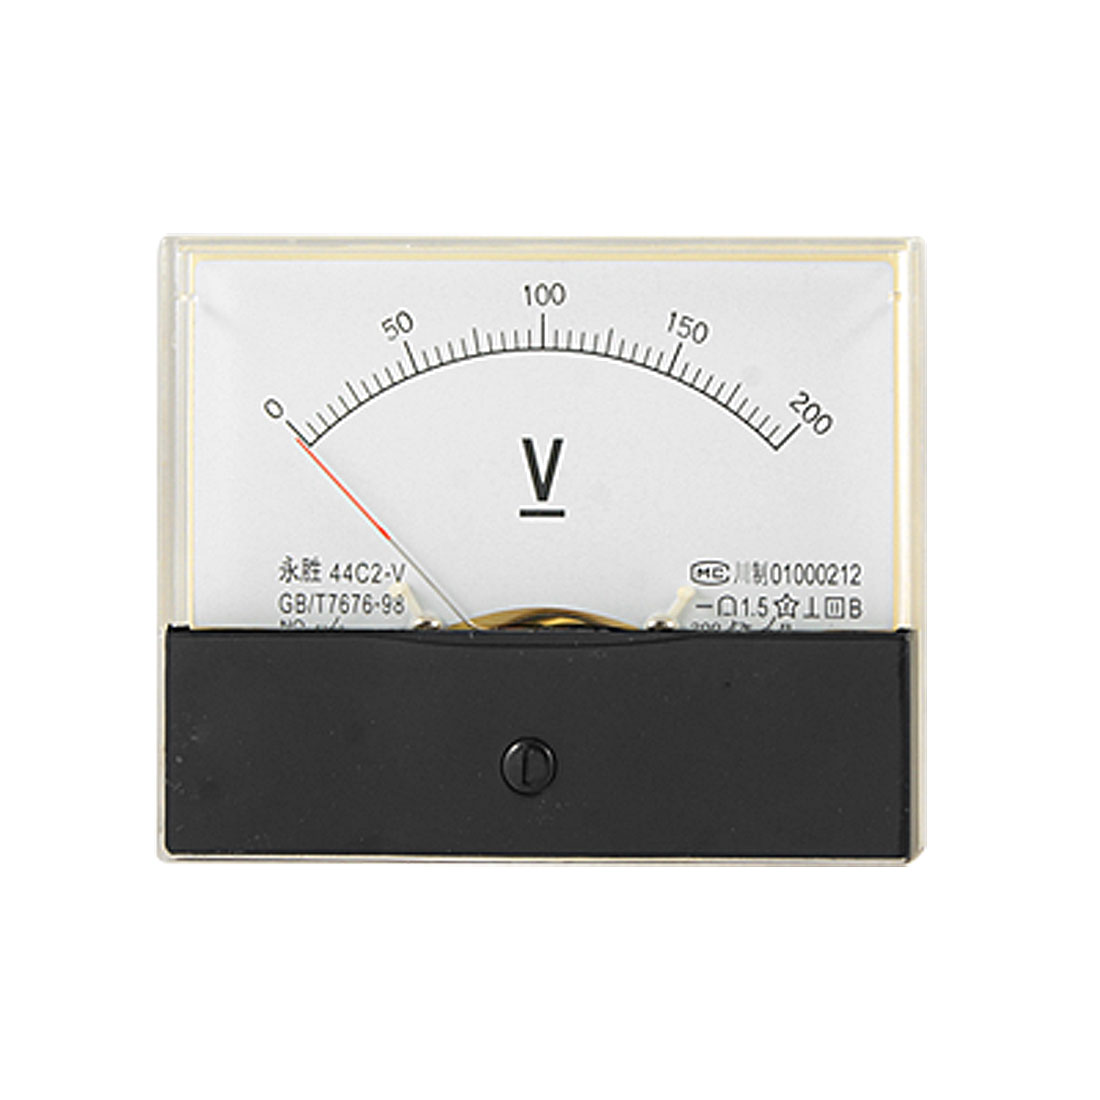 44C2 0-200V DC Voltage Meter Rectangle Panel Voltmeter Analog Gauge